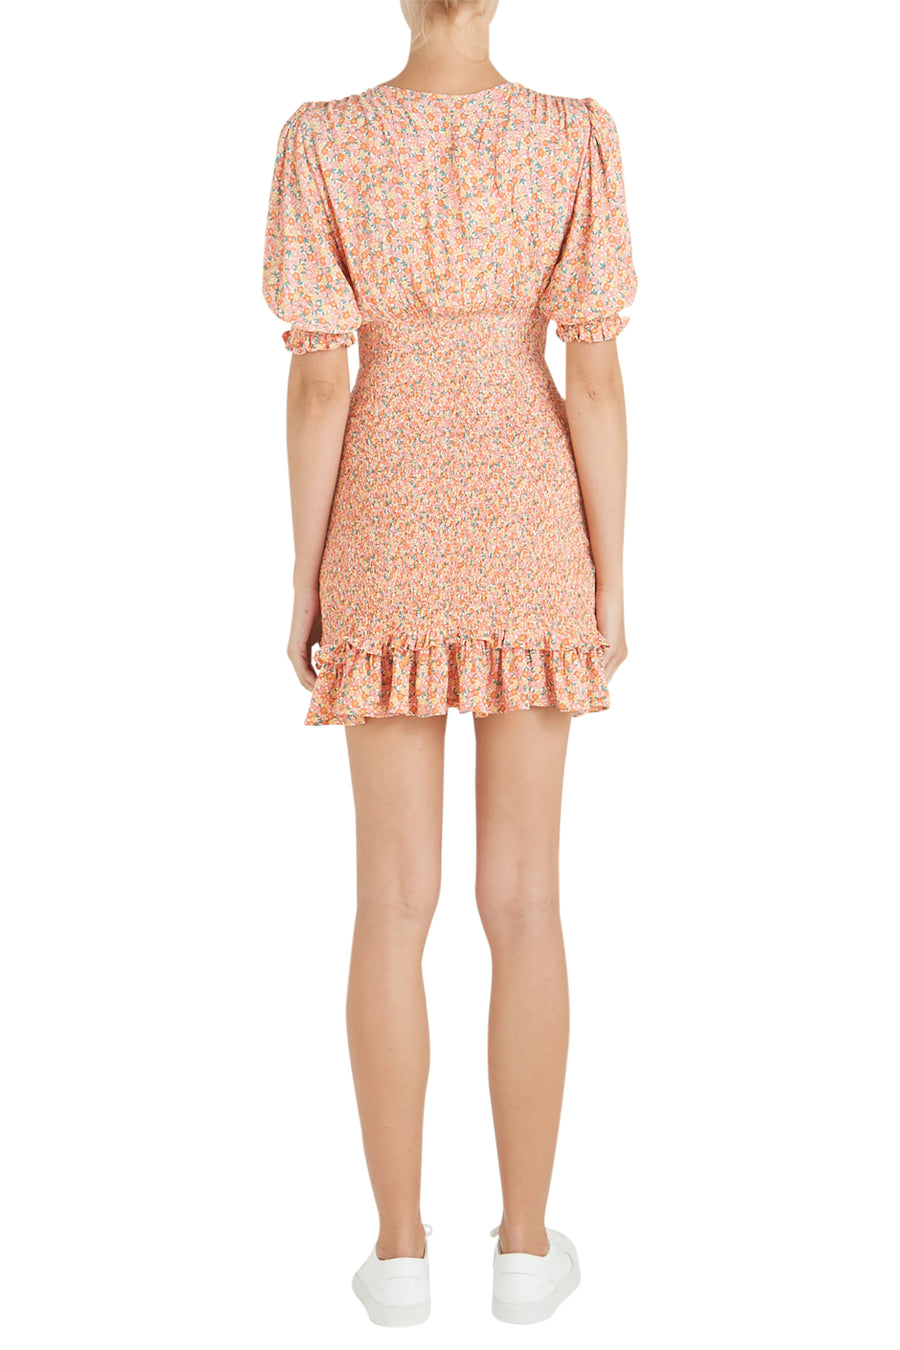 Faithfull The Brand Margherita Summer Mini Dress from The New Trend